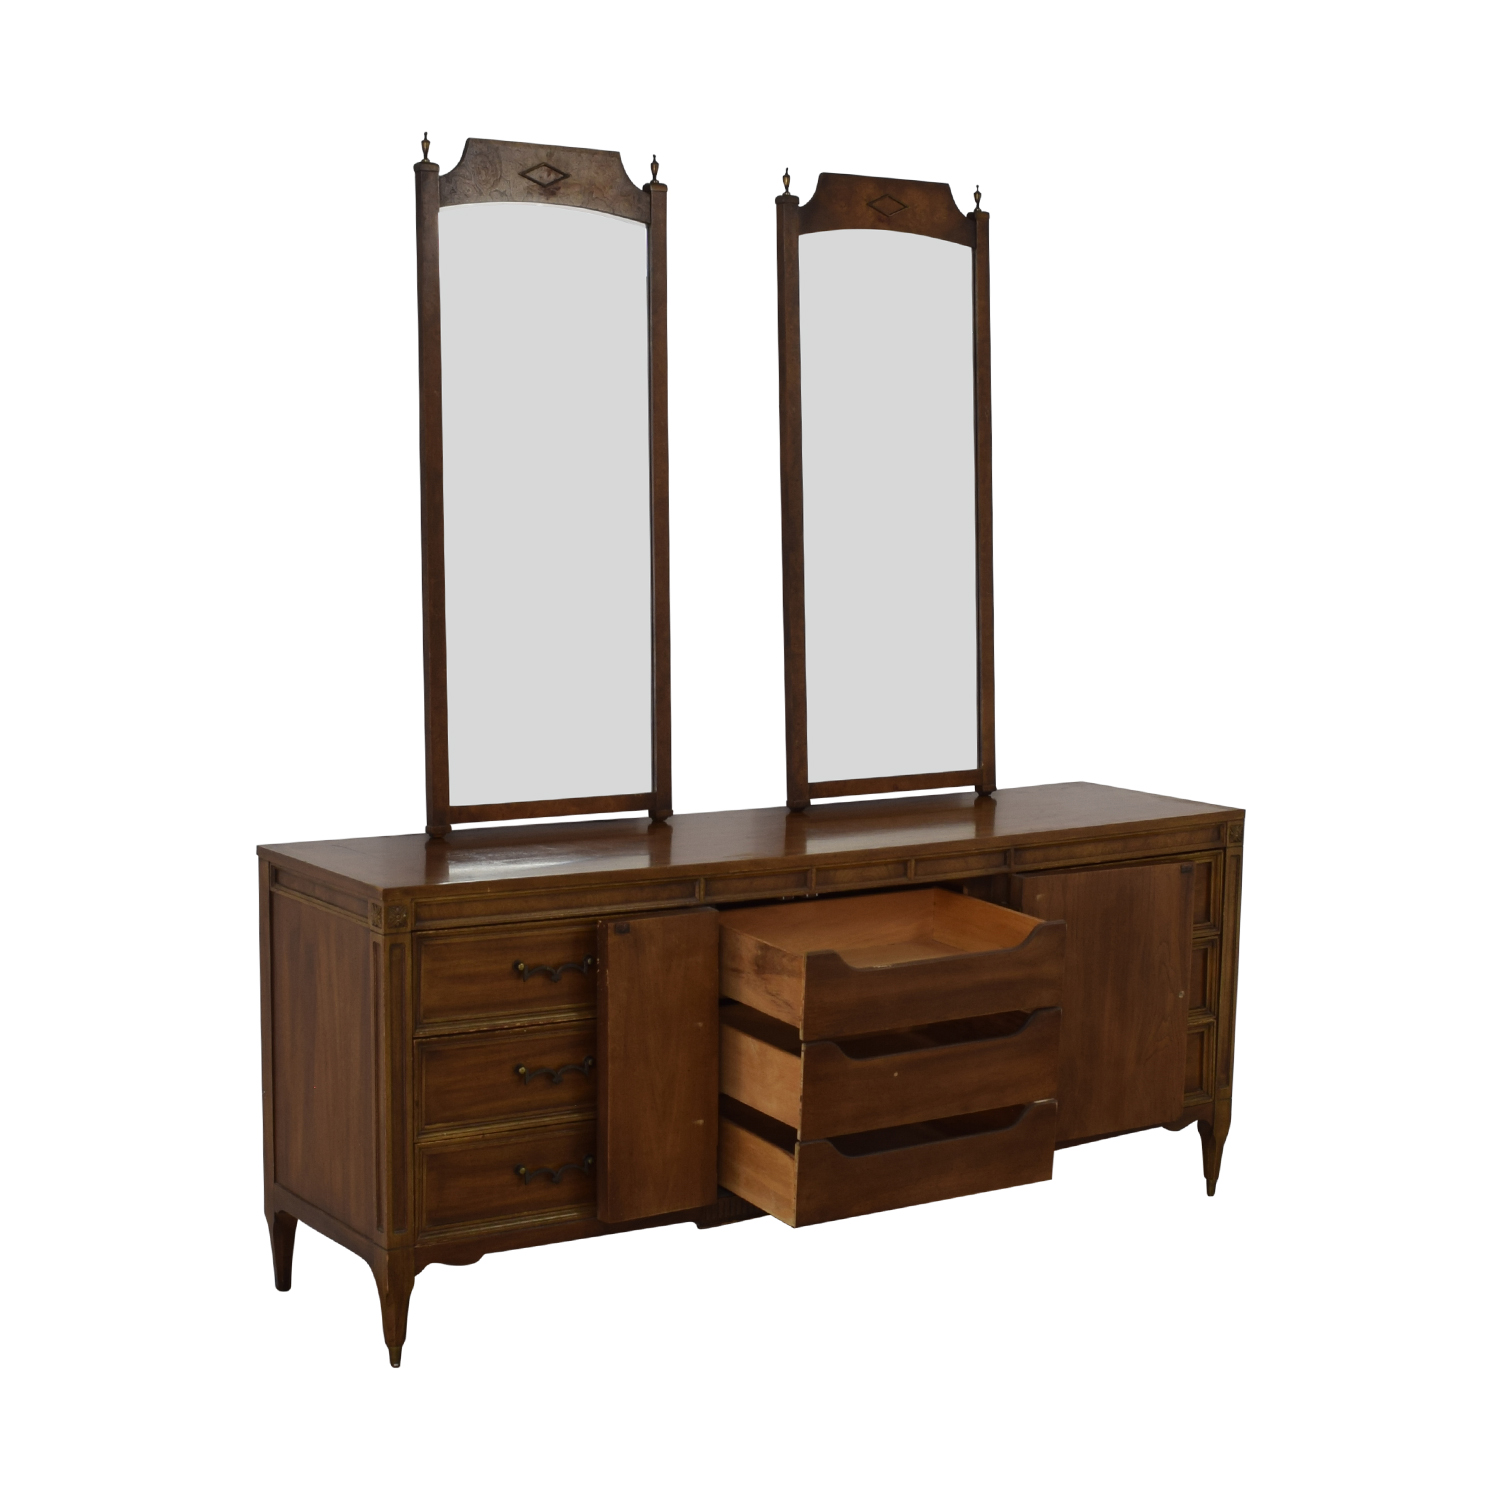 61% OFF - American of Martinsville American of Martinsville Vintage Dresser  with Mirrors / Storage